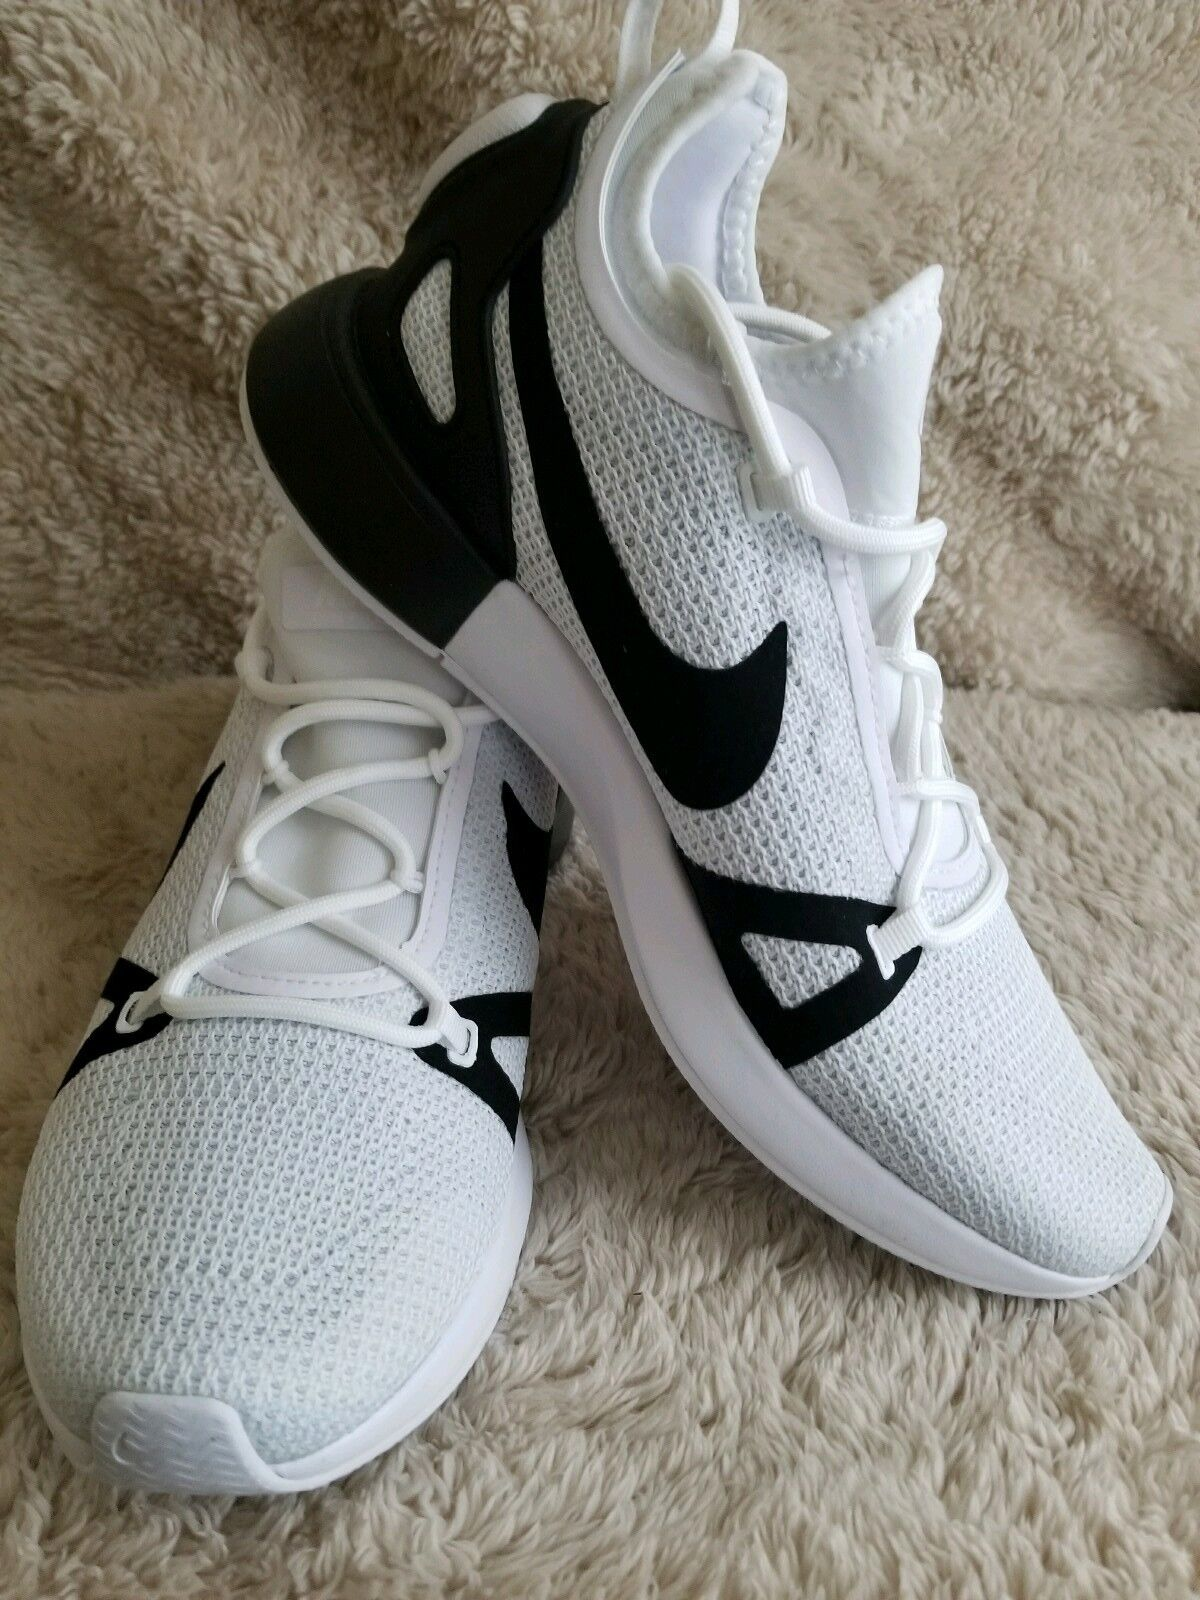 Nike Duel Racer 918228-102 White Black Platinum Men's Sportswear Running shoes